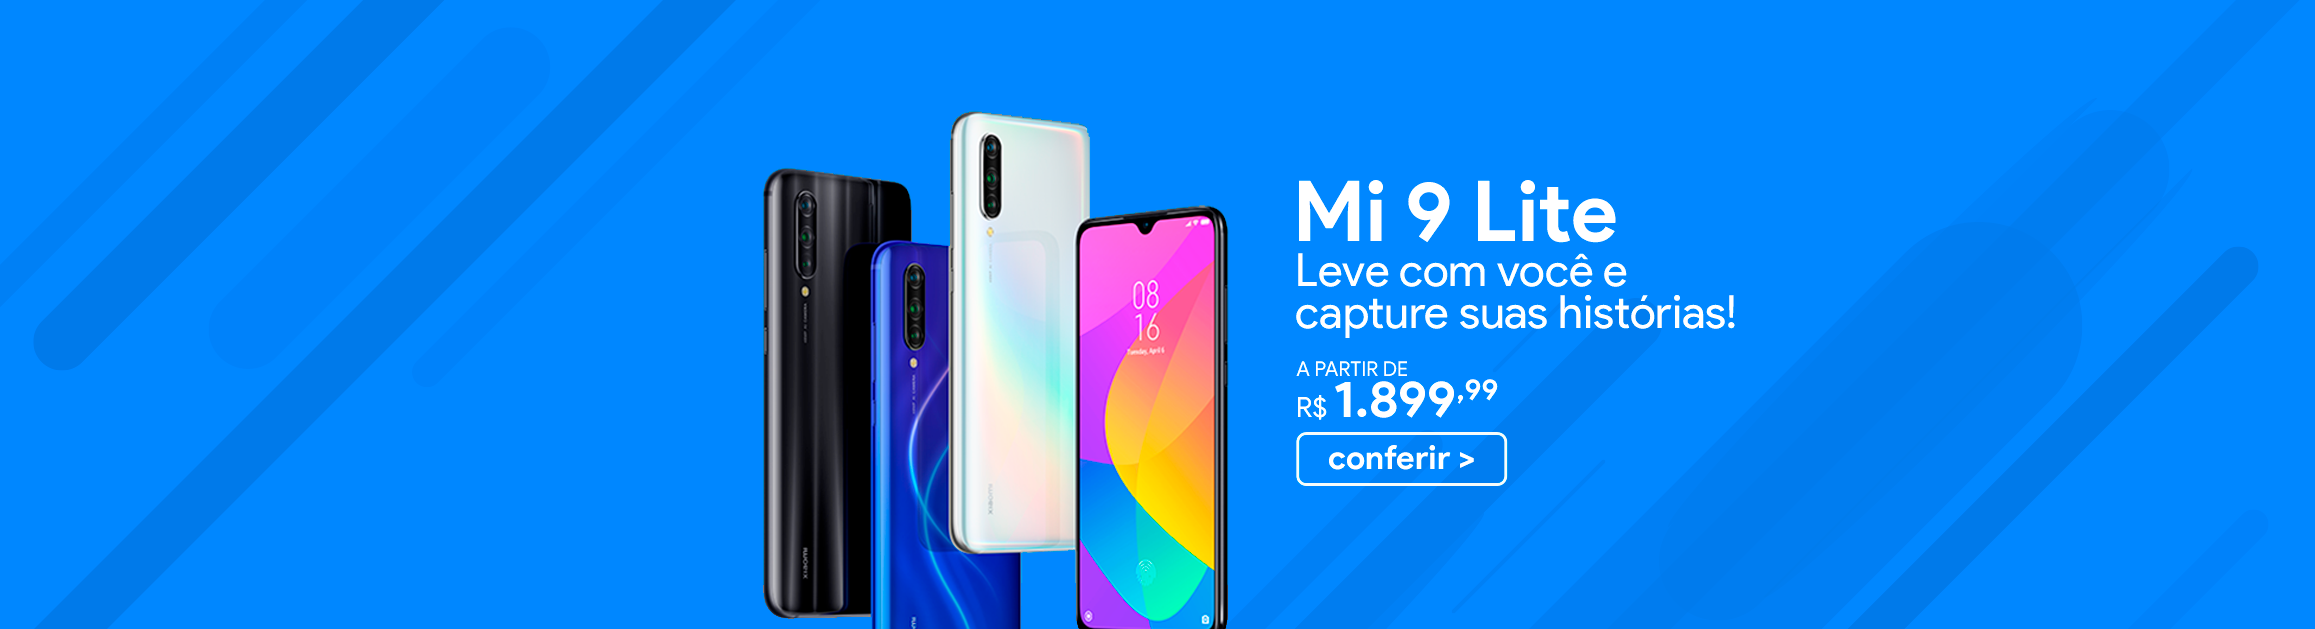 Mi 9 Lite - Snap Your Story